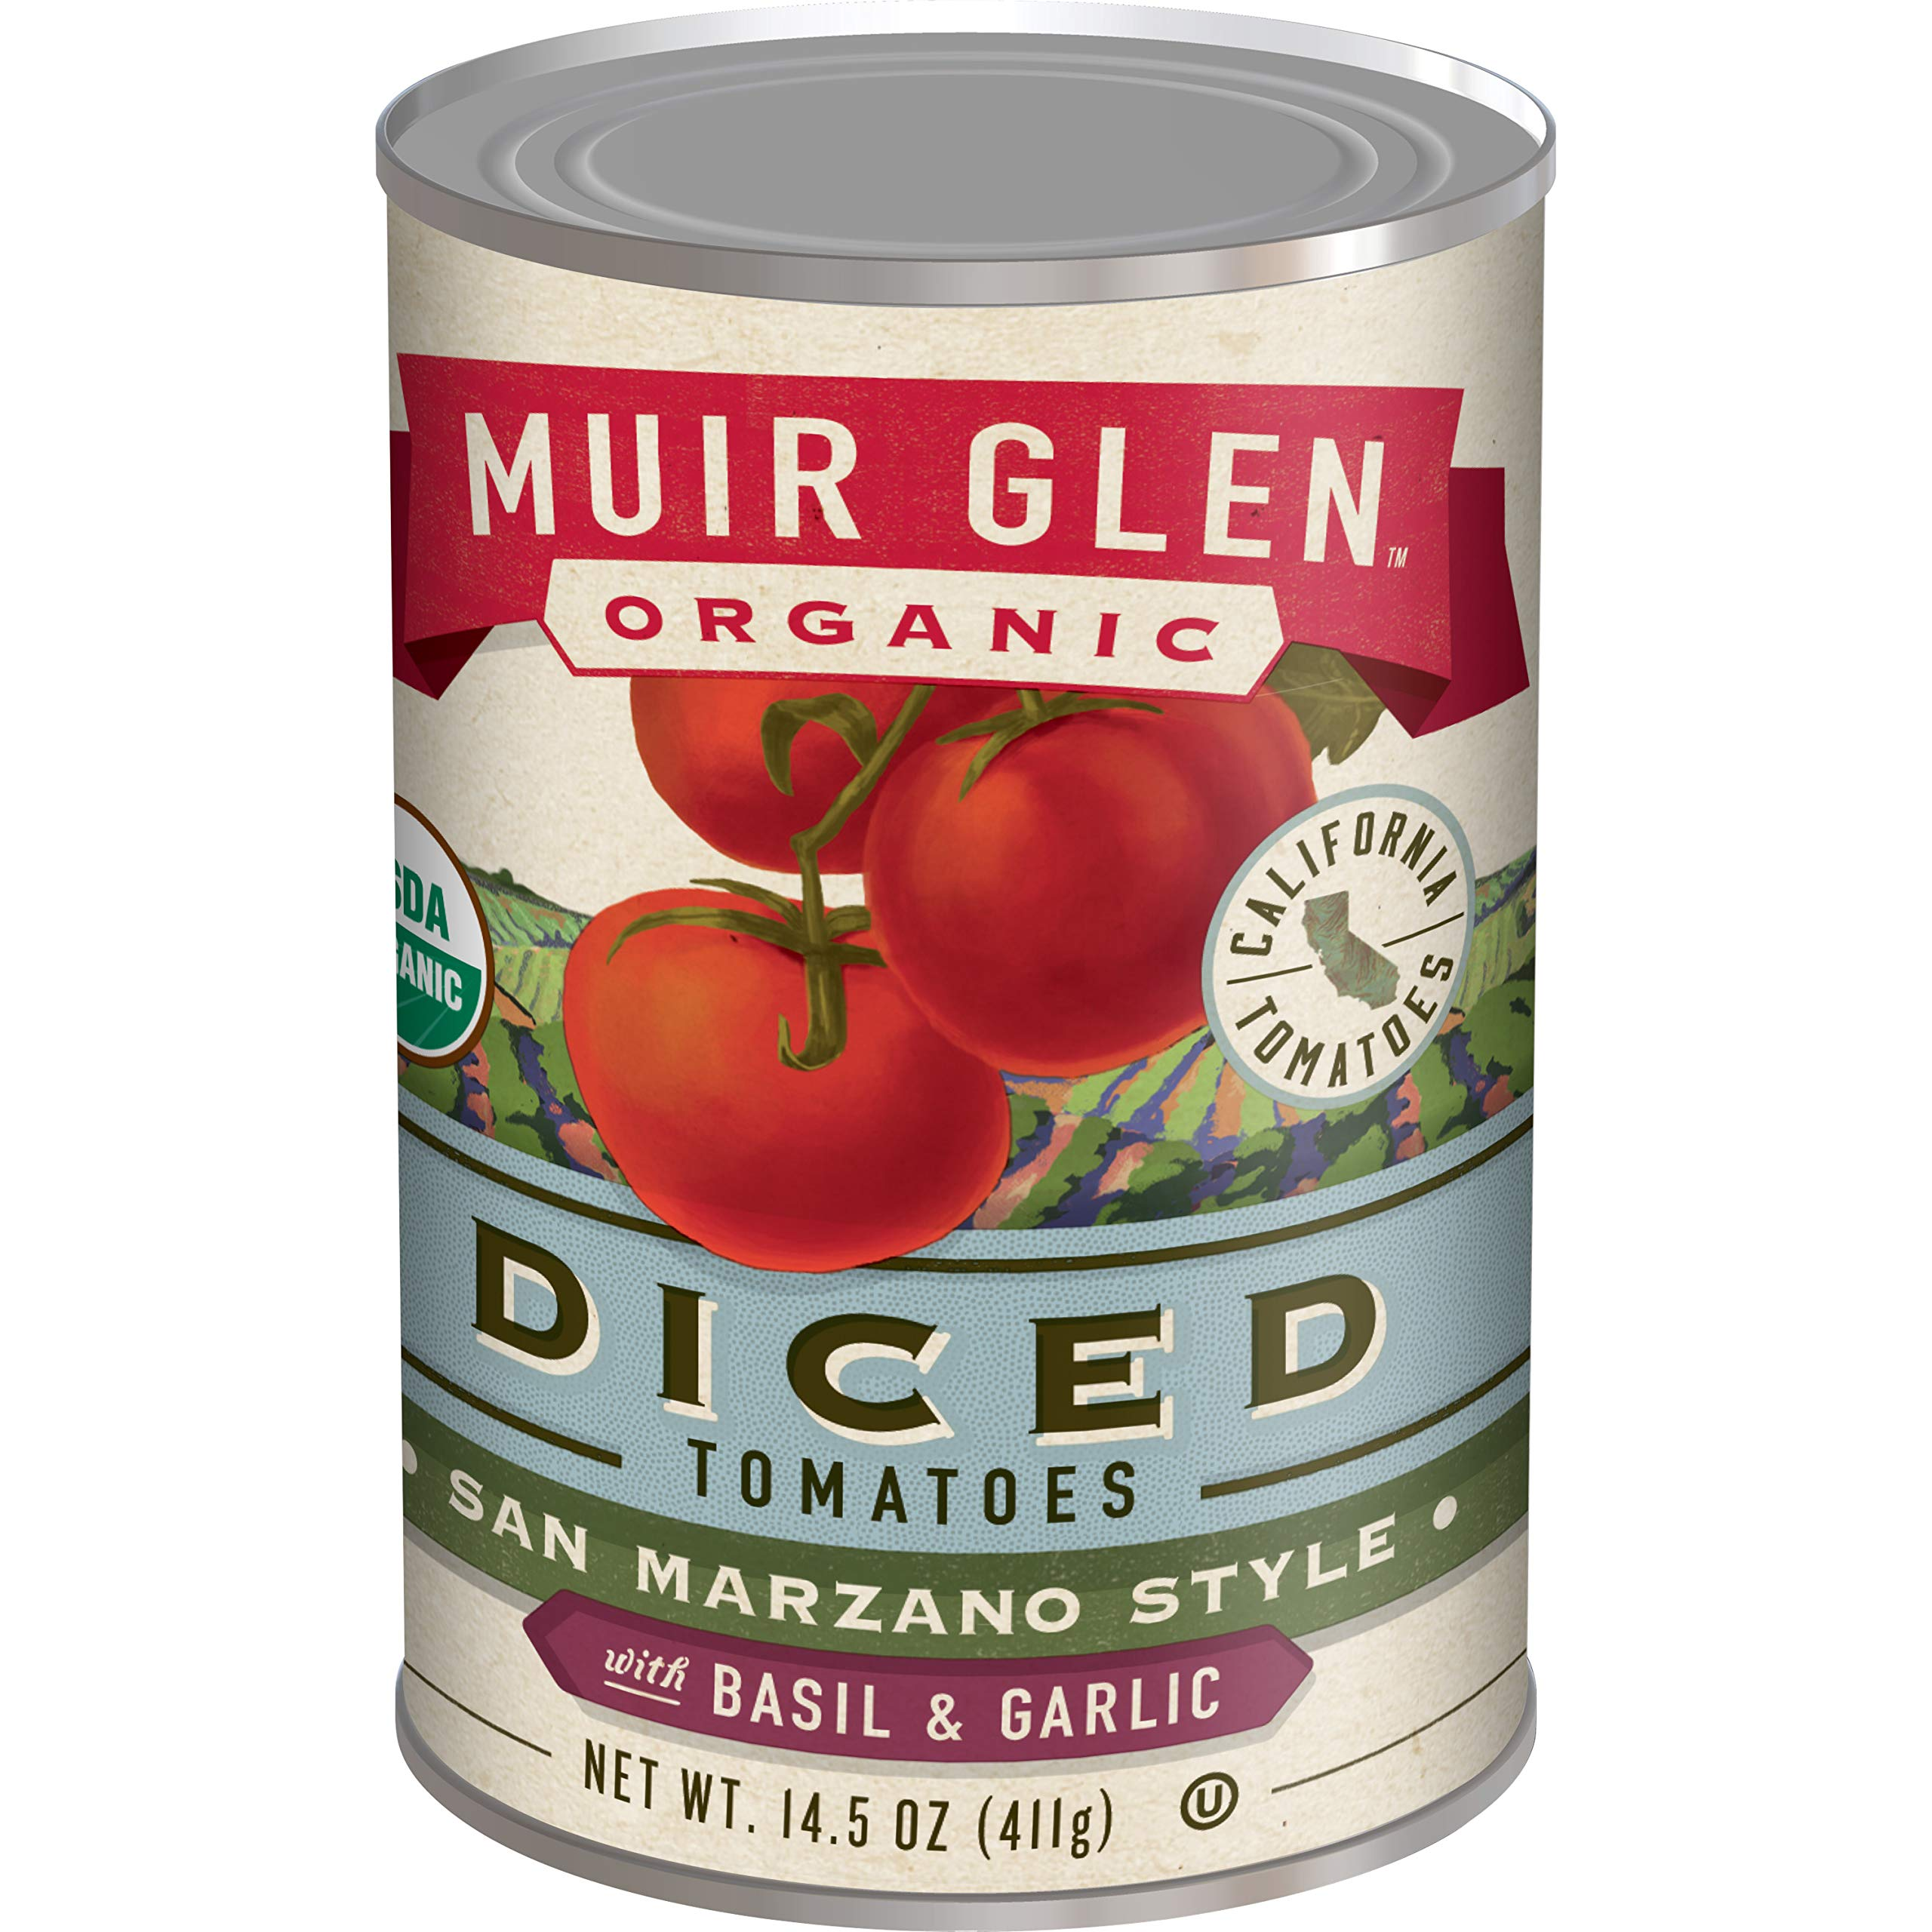 Muir Glen Canned Tomatoes, Organic Diced Tomatoes with Basil & Garlic, San Marzano Tomatoes, No Sugar Added, 14.5 Ounce Can (Pack of 12)